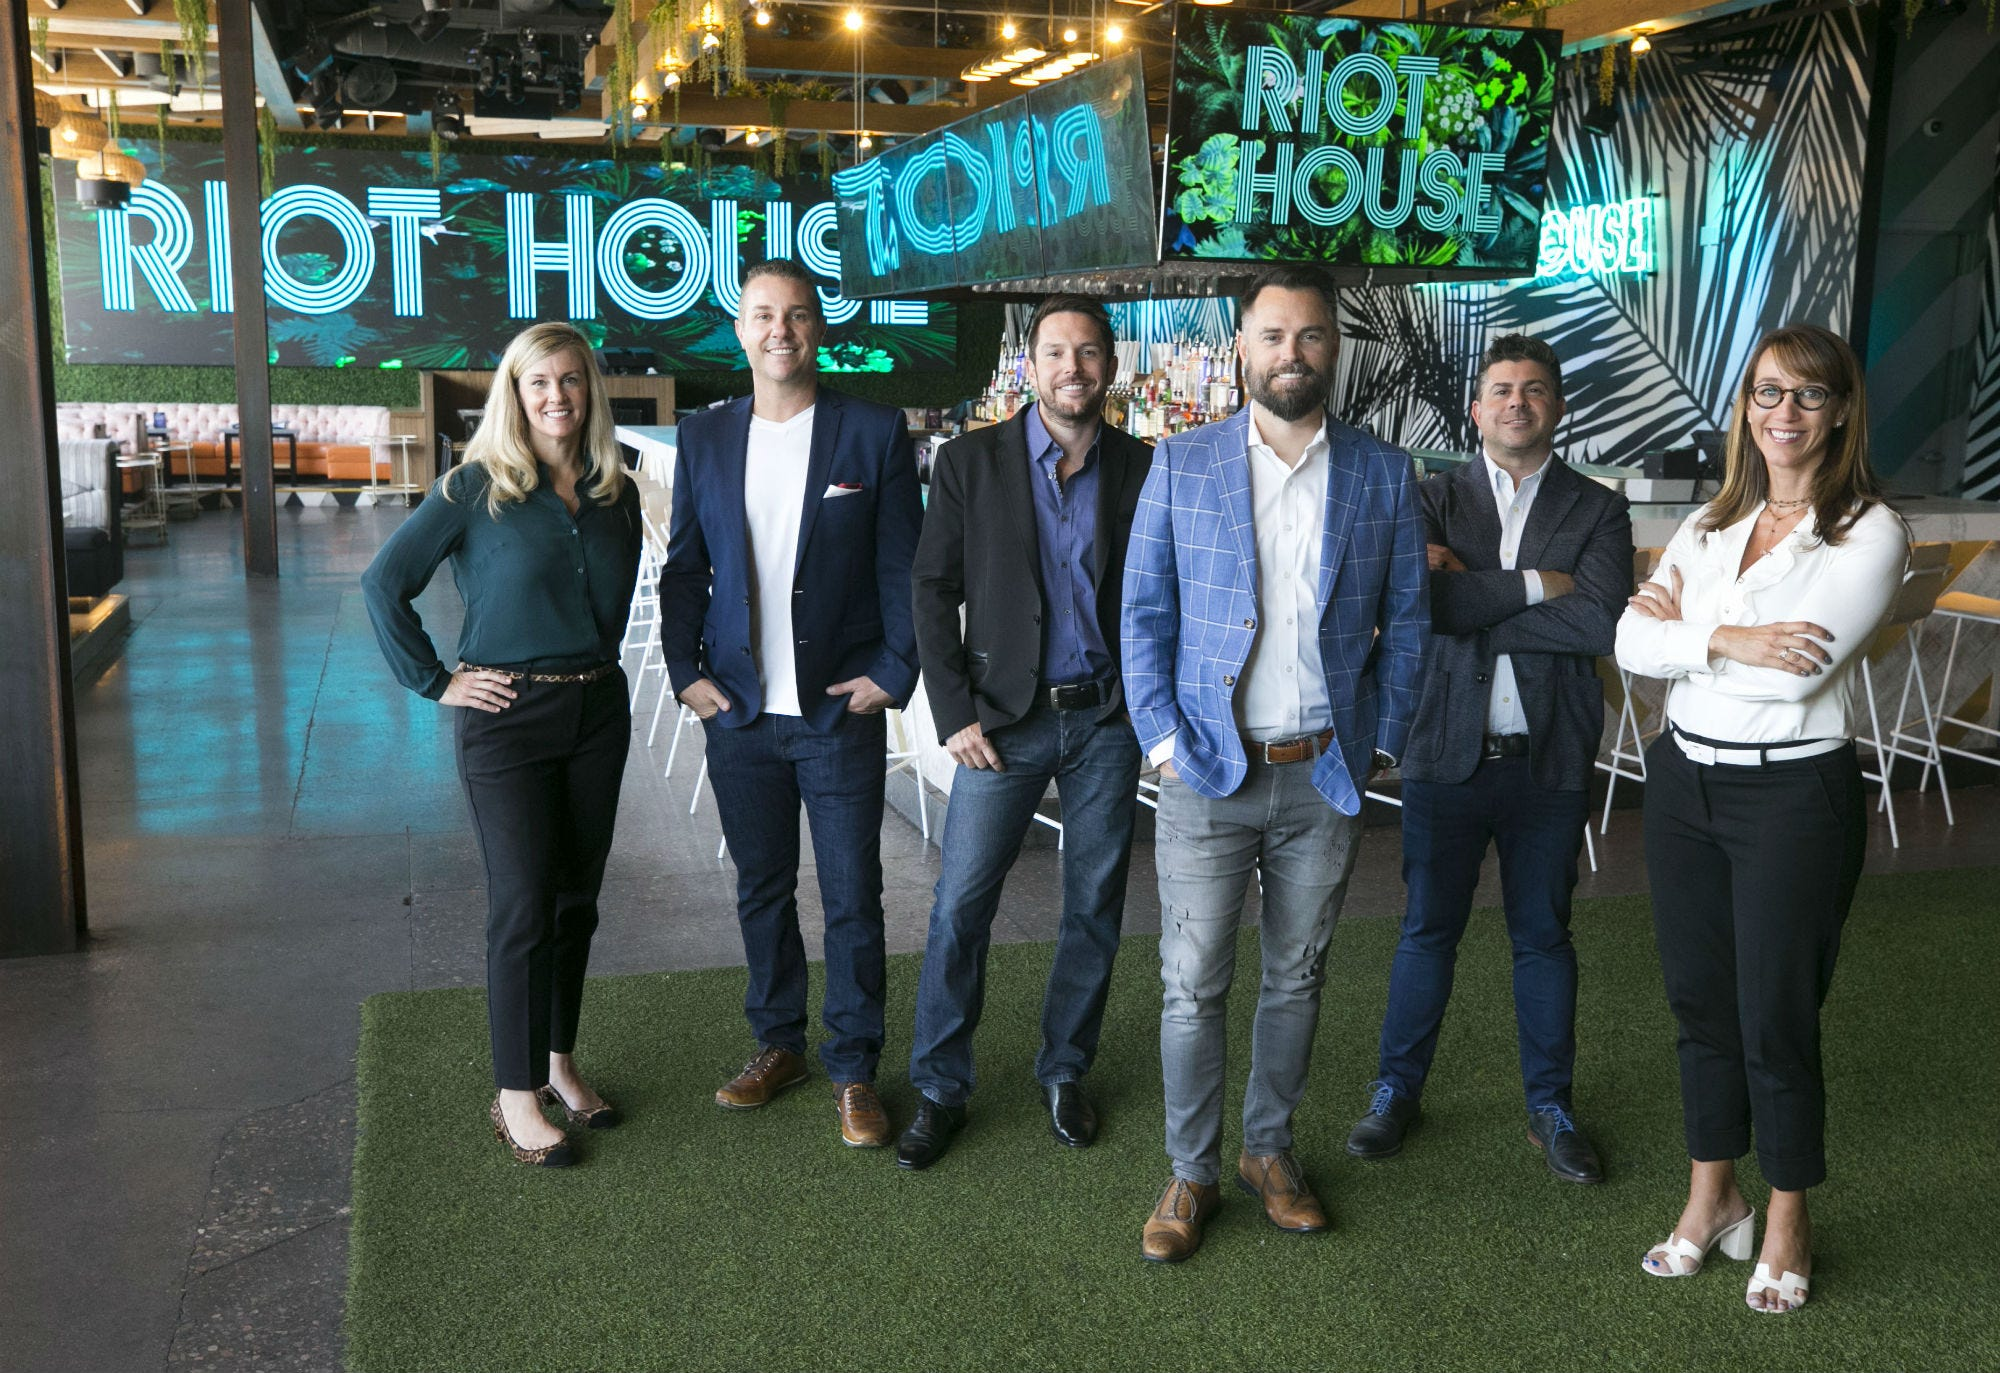 Creating a new eatery category screams success for Scottsdale's Riot Hospitality Group